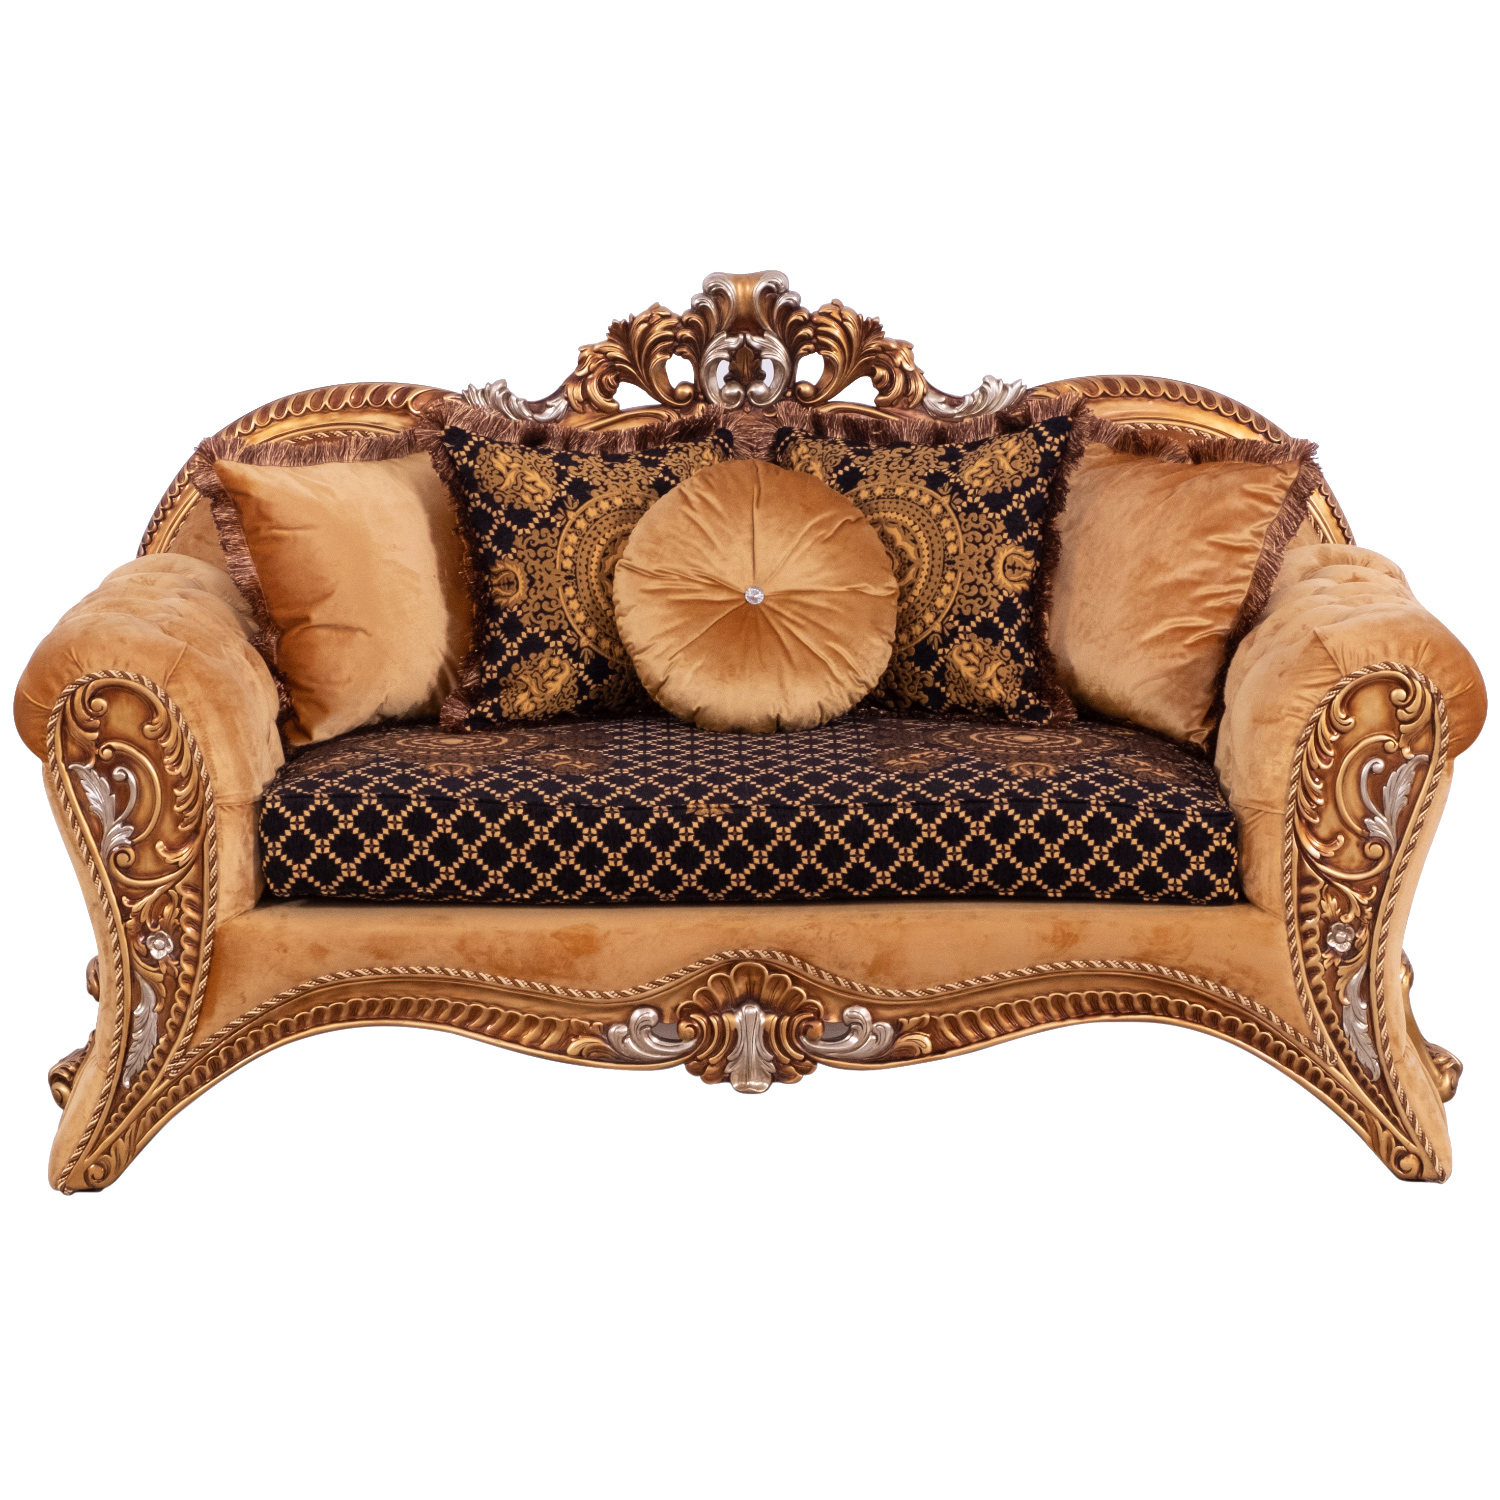 Grand European Luxury Furniture 42035 S Emperador Sofa Fabric Carved Antique Brown Silver Mahogany In 2020 Luxury Furniture Furniture Luxury Furniture Stores